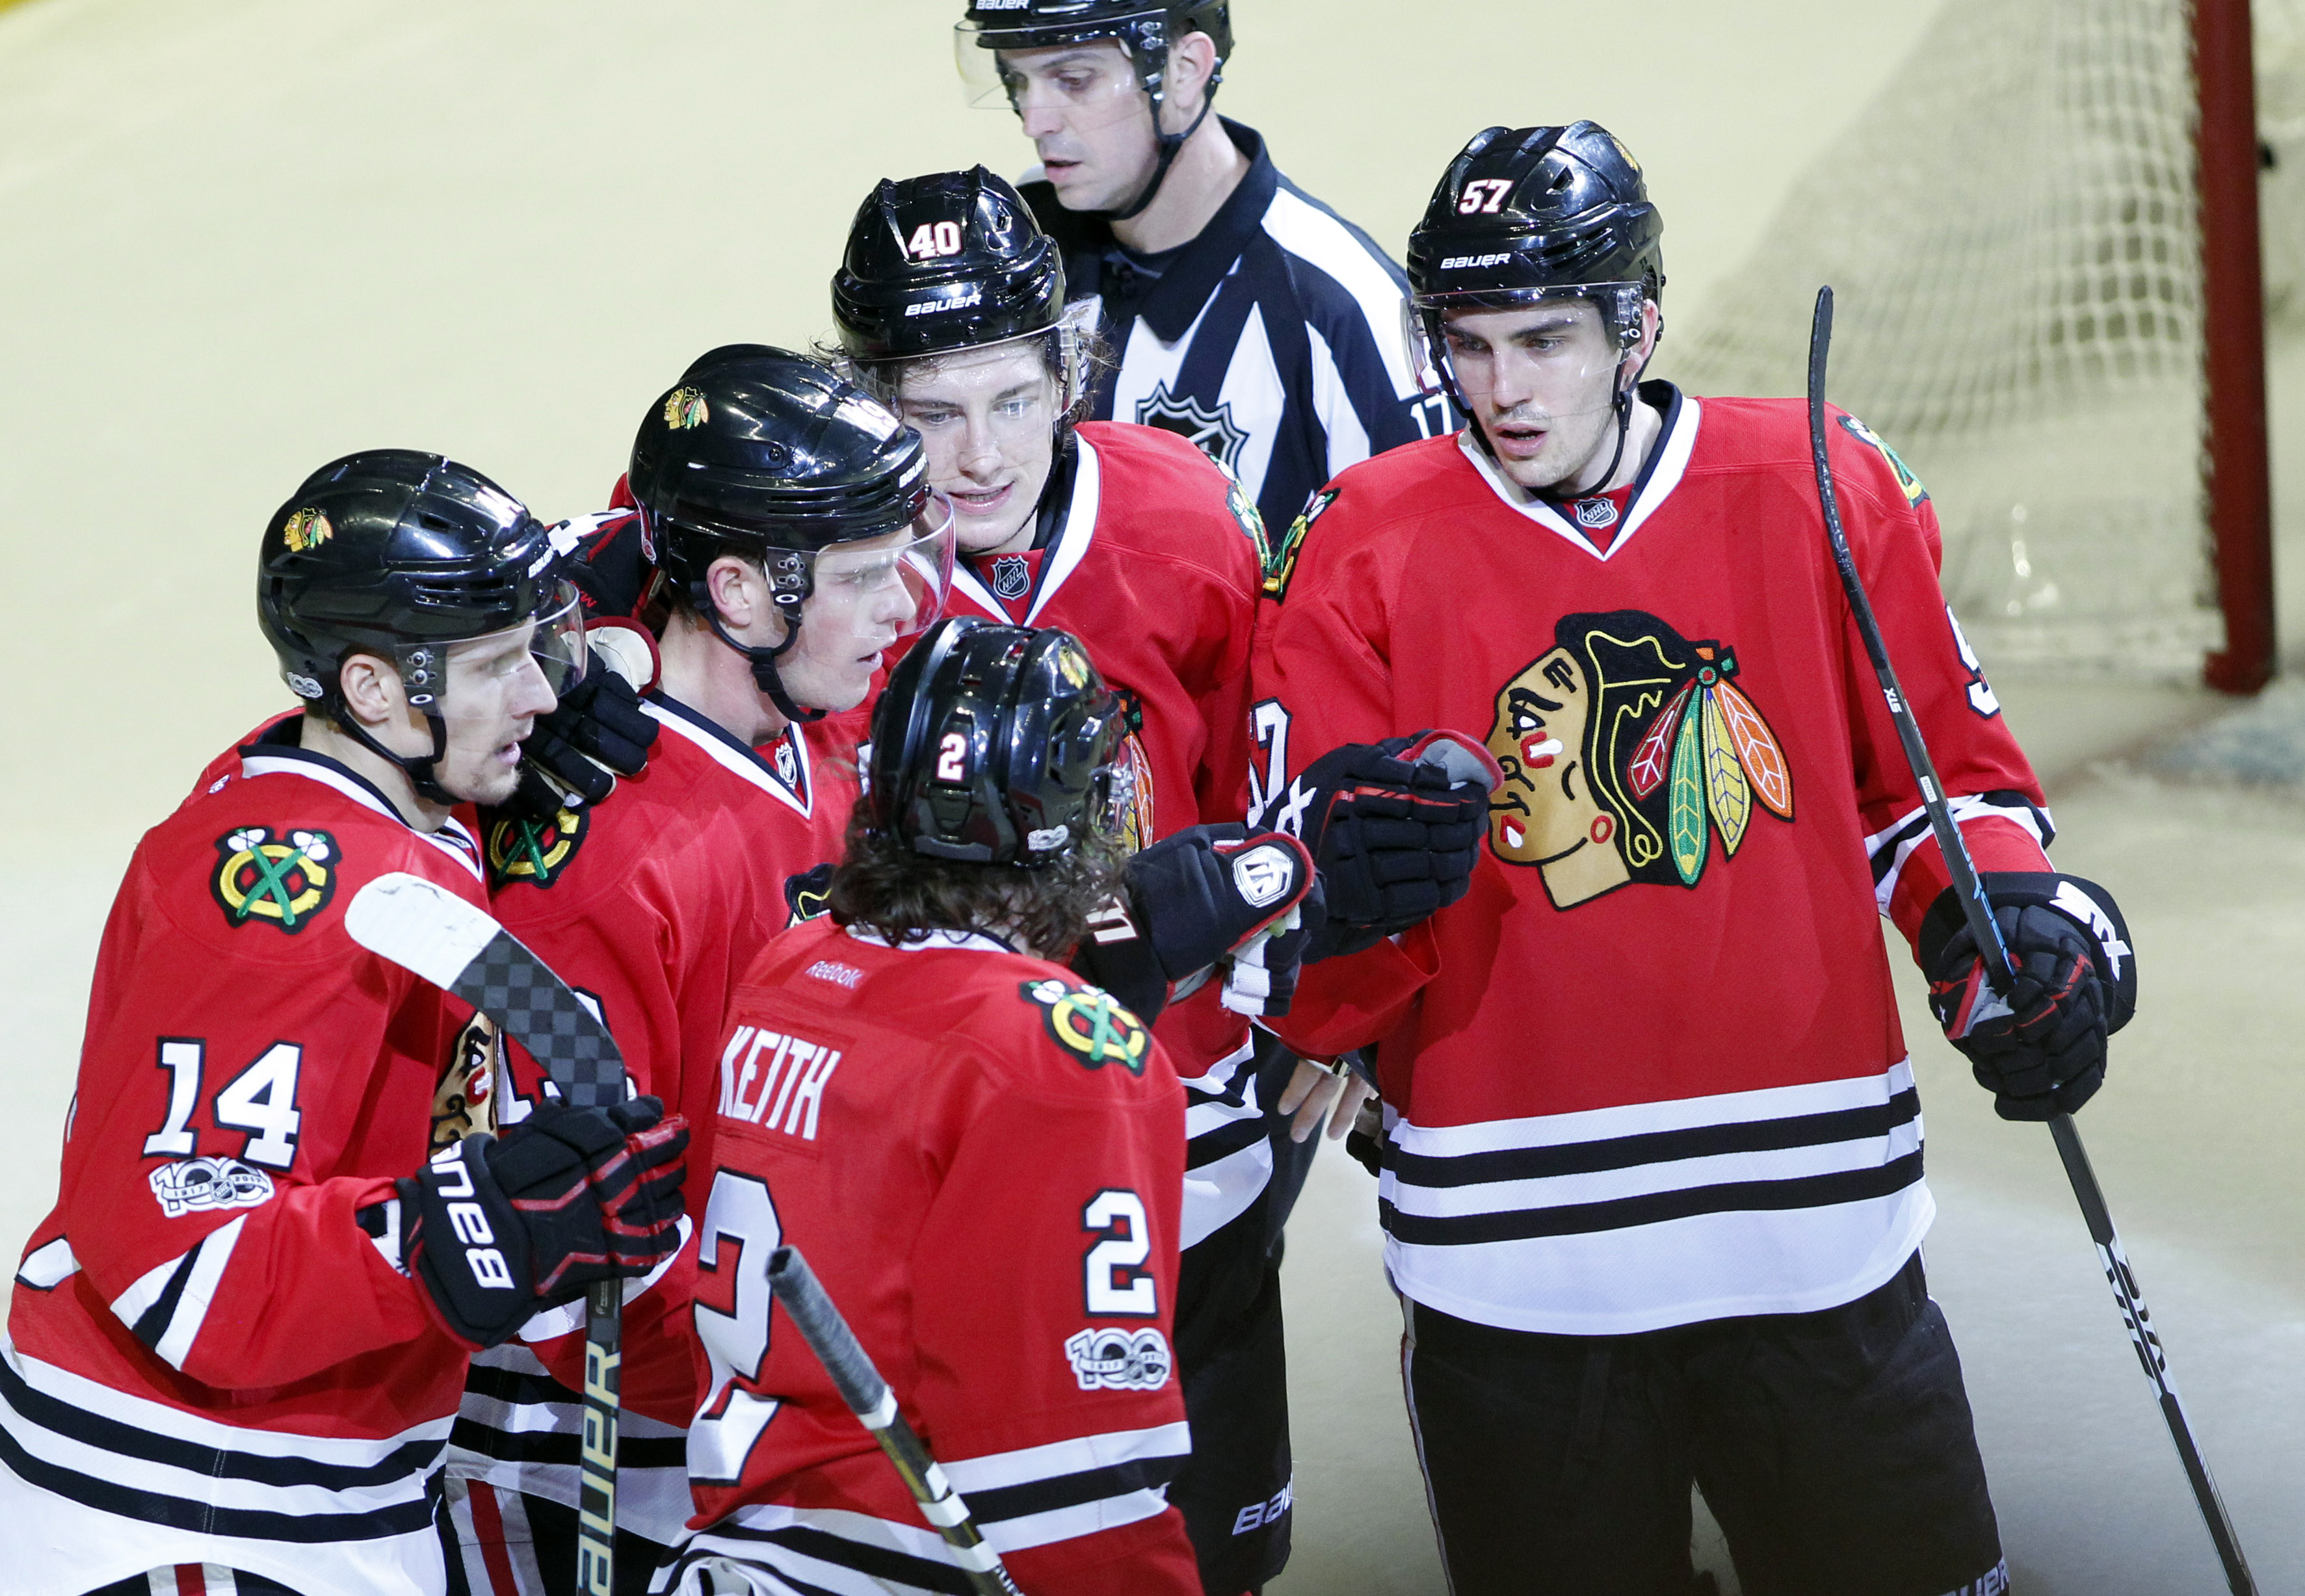 9959154-nhl-colorado-avalanche-at-chicago-blackhawks